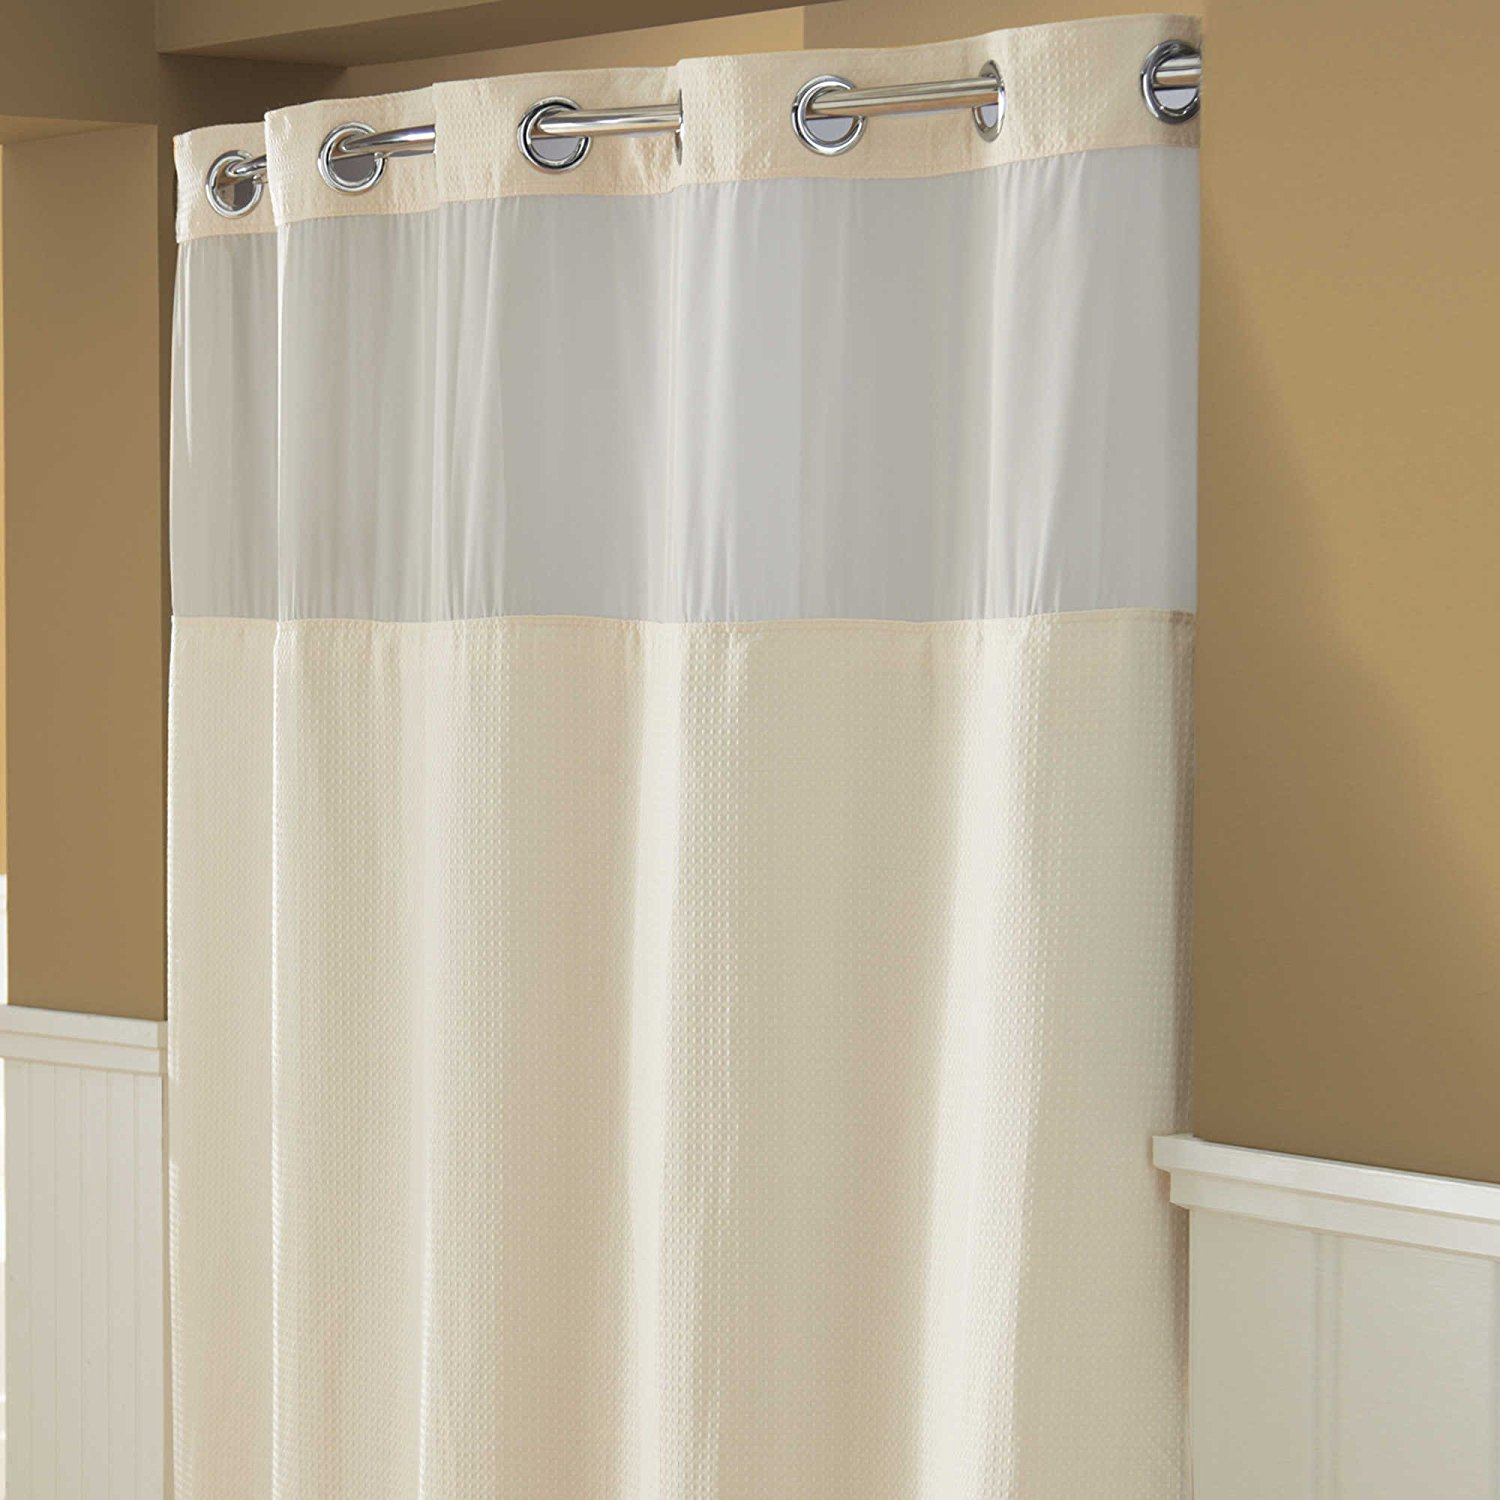 Hookless Hangis in Seconds Waffle Fabric Shower Curtain (71 x 74, Cream)